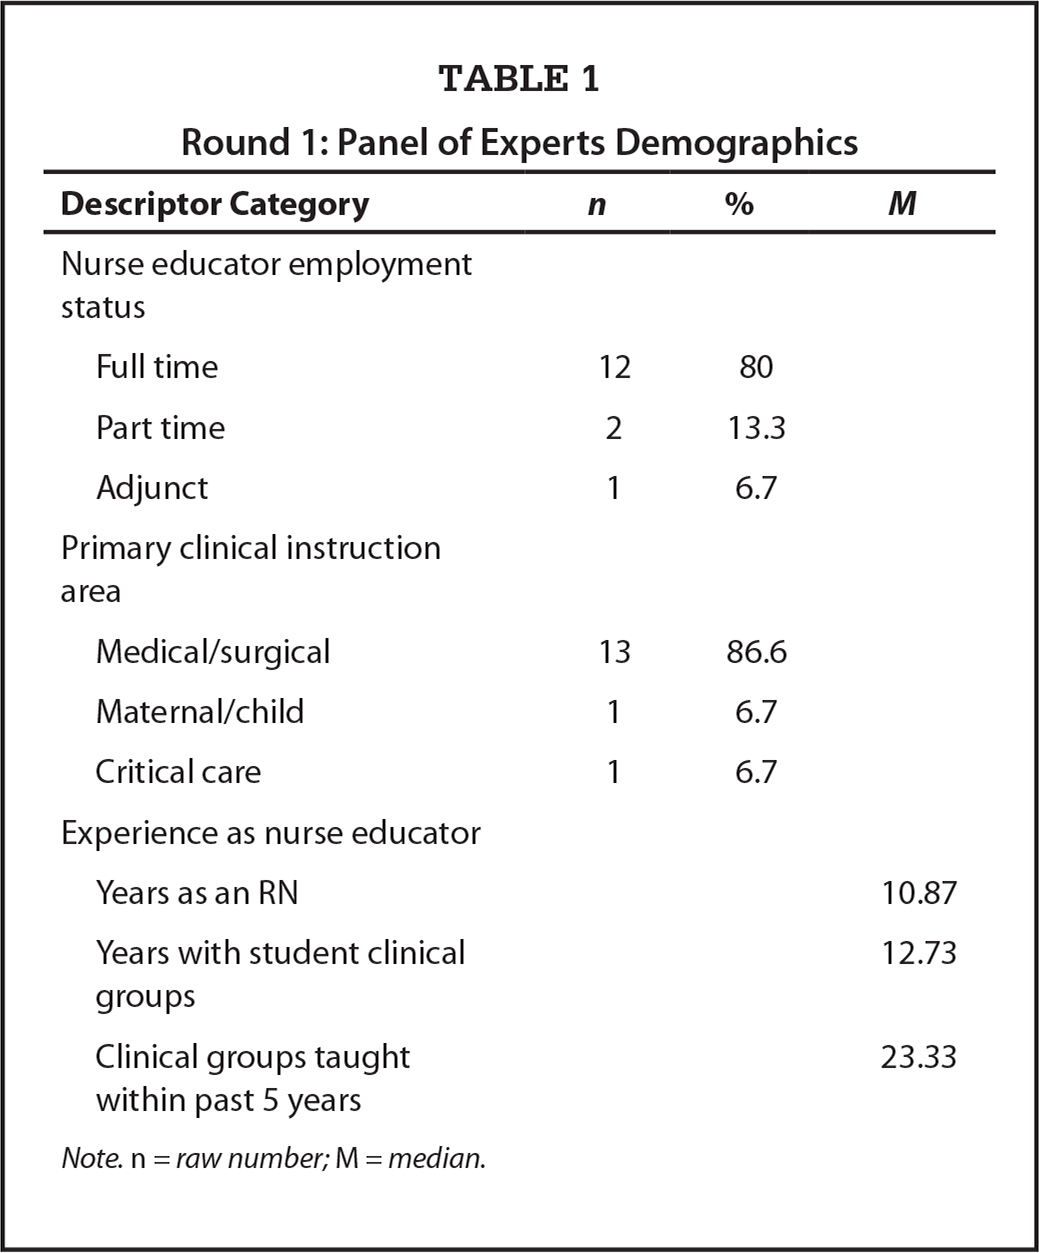 Round 1: Panel of Experts Demographics